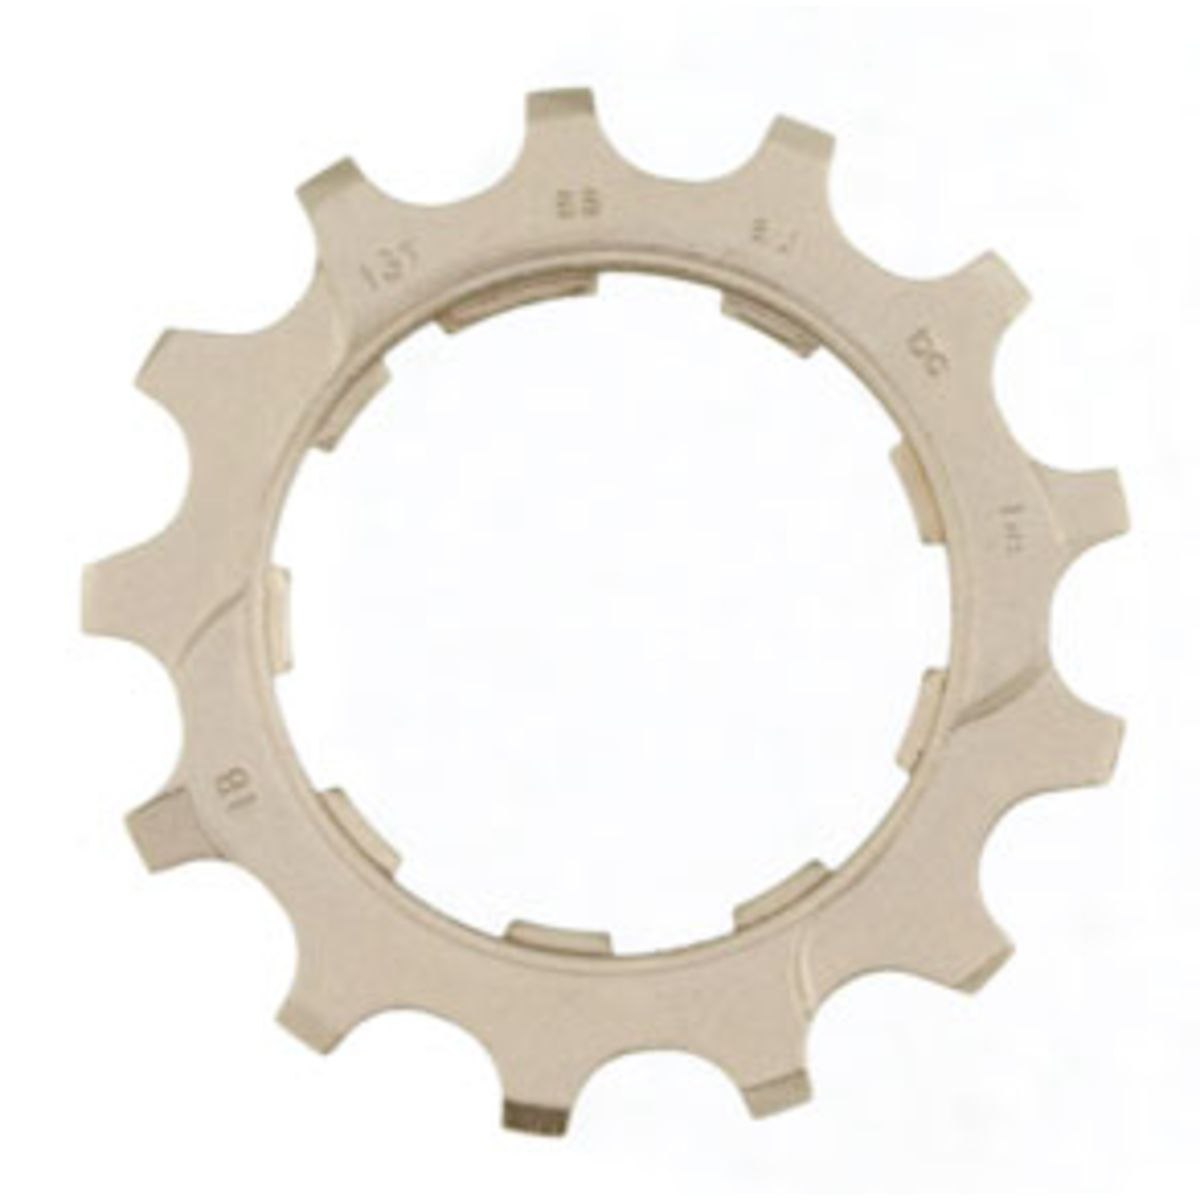 CS-HG80 9-speed, 13-tooth replacement sprocket